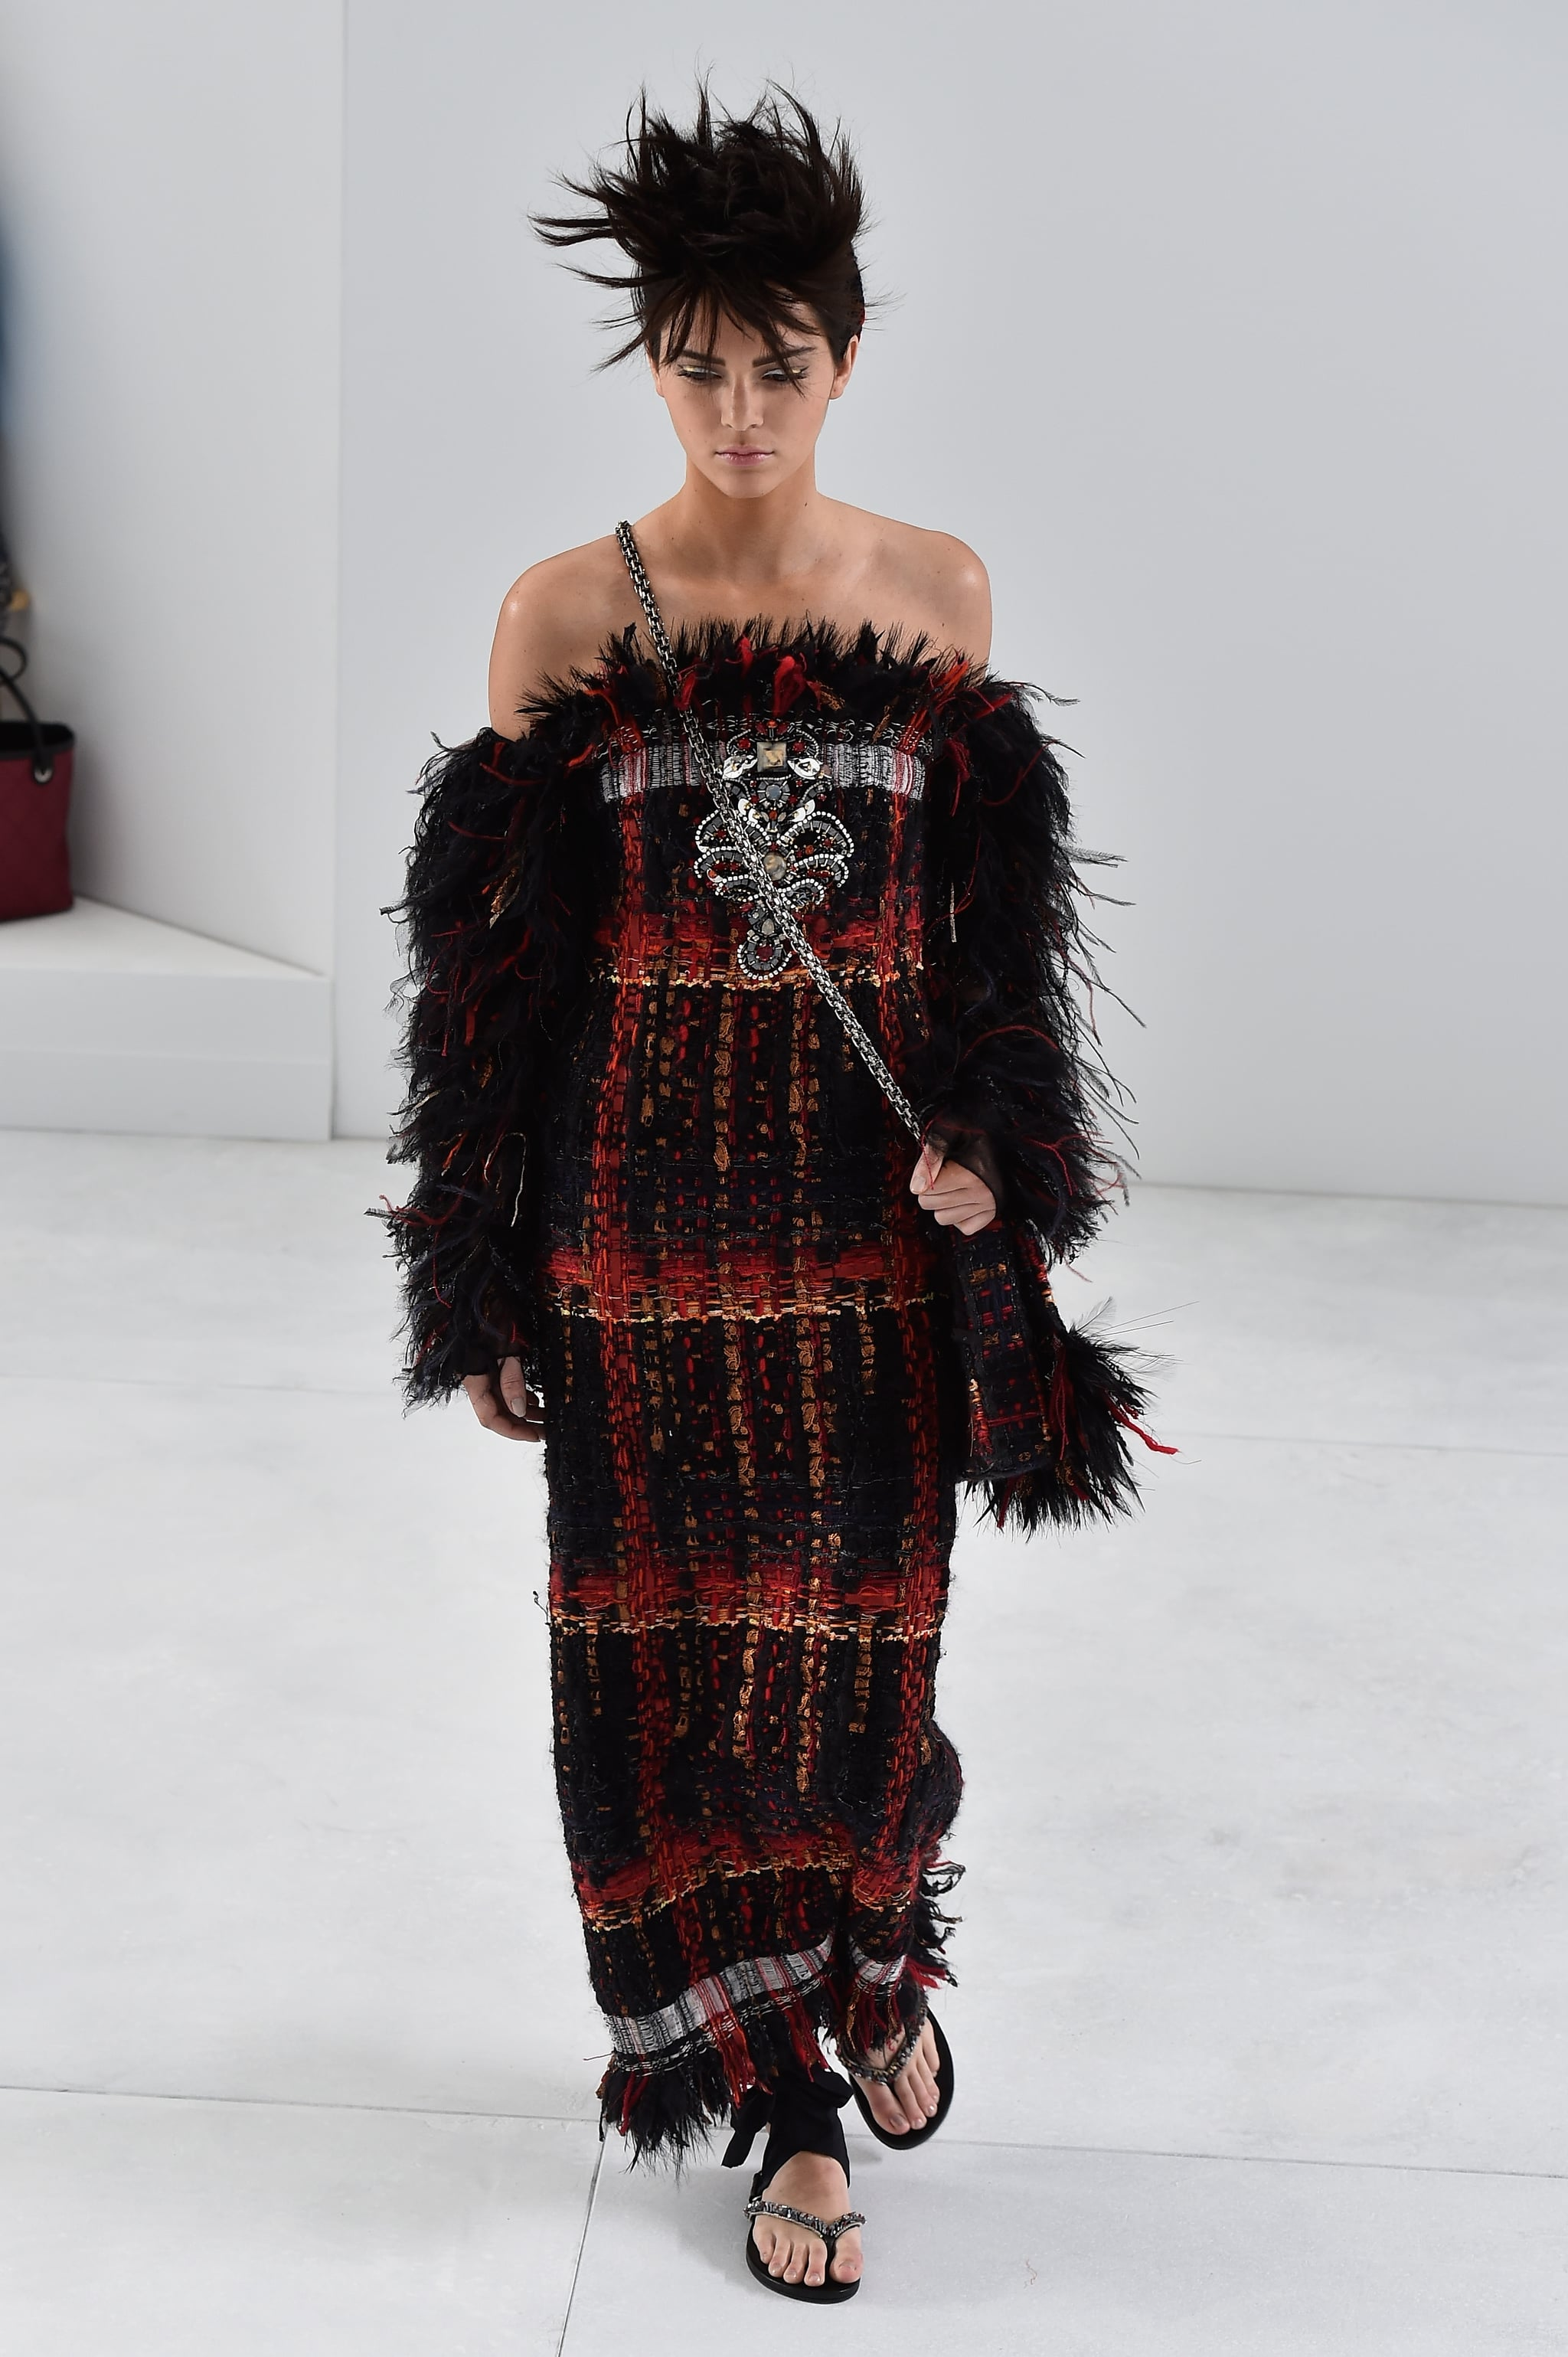 Kendall walked the Chanel Haute Couture show at Paris Fashion Week on Tuesday.